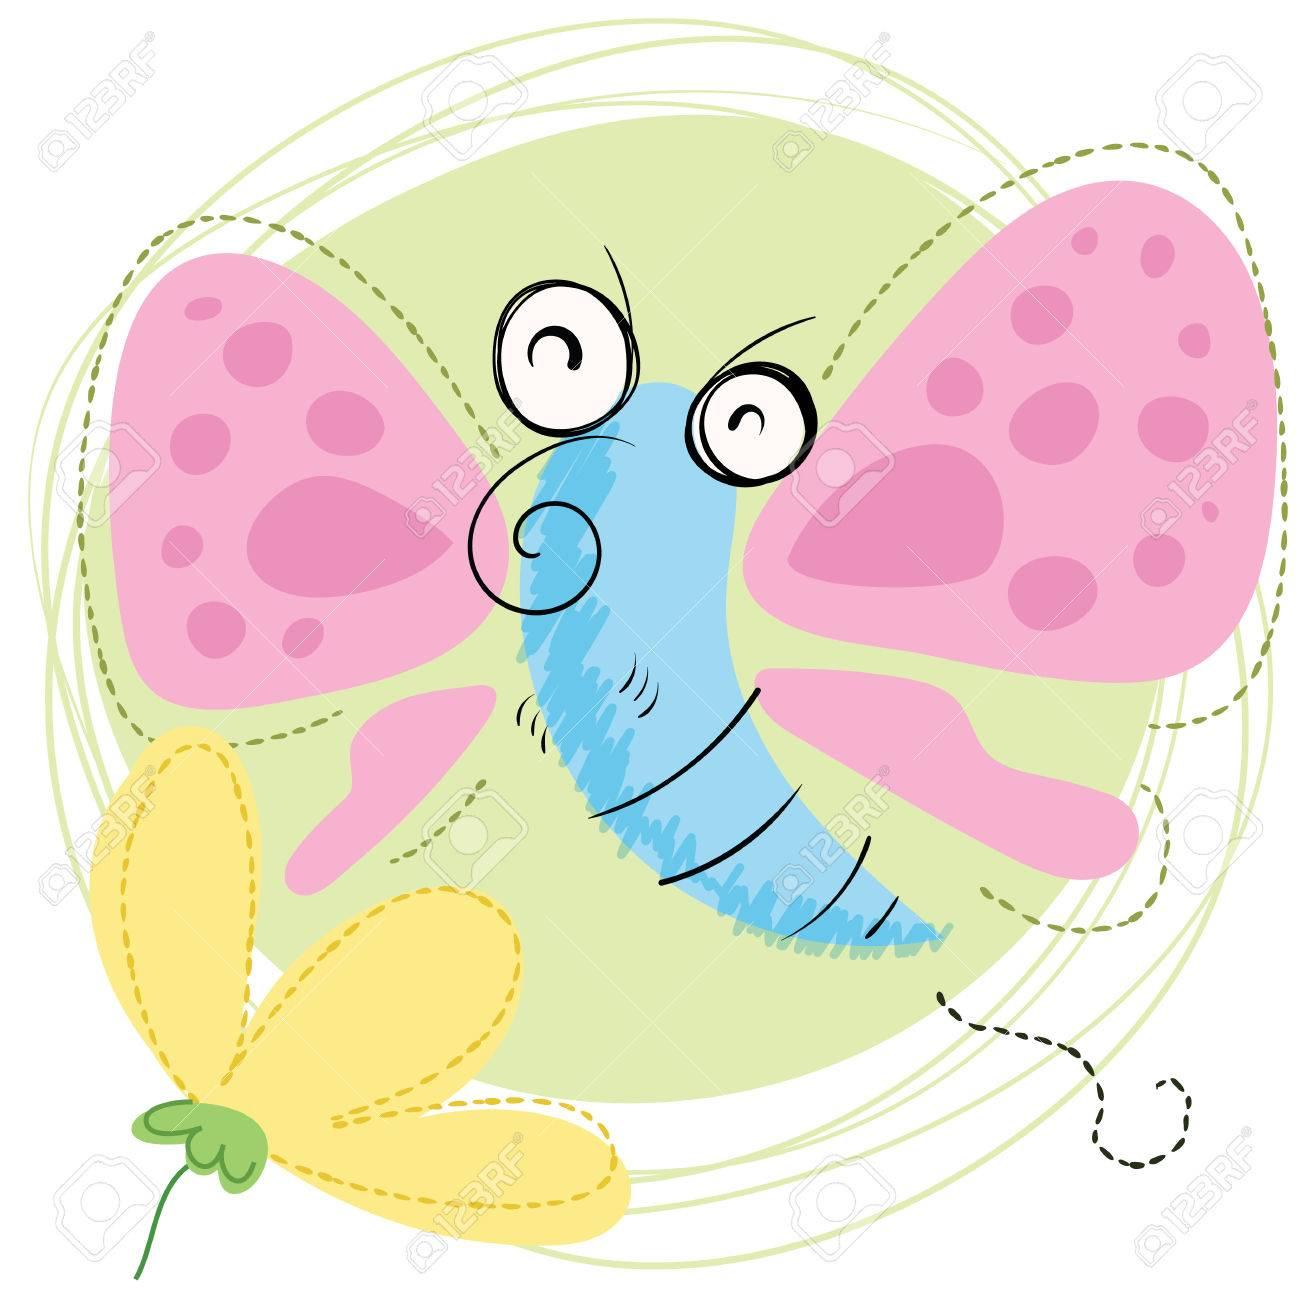 cartoon smiling butterfly with flower royalty free cliparts